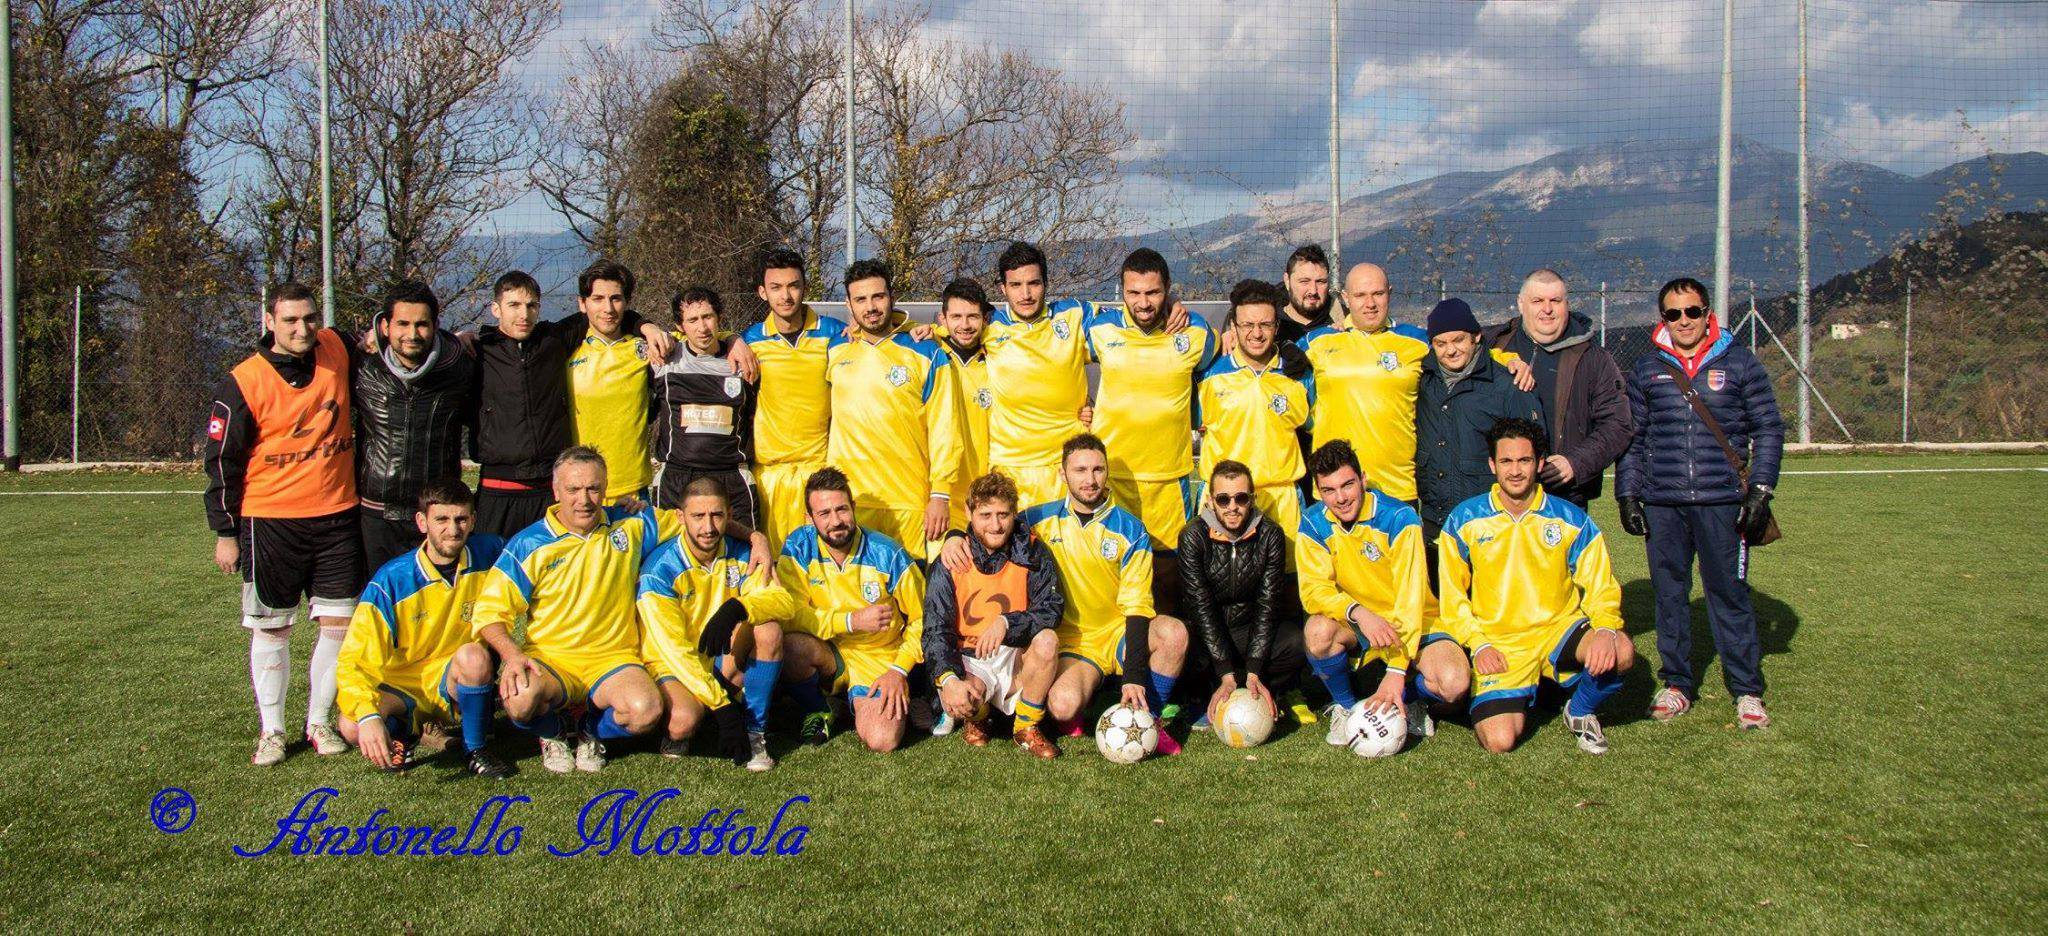 Terza Categoria (Gir.E): Impresa del Cilento Calcio in vista dei playoff